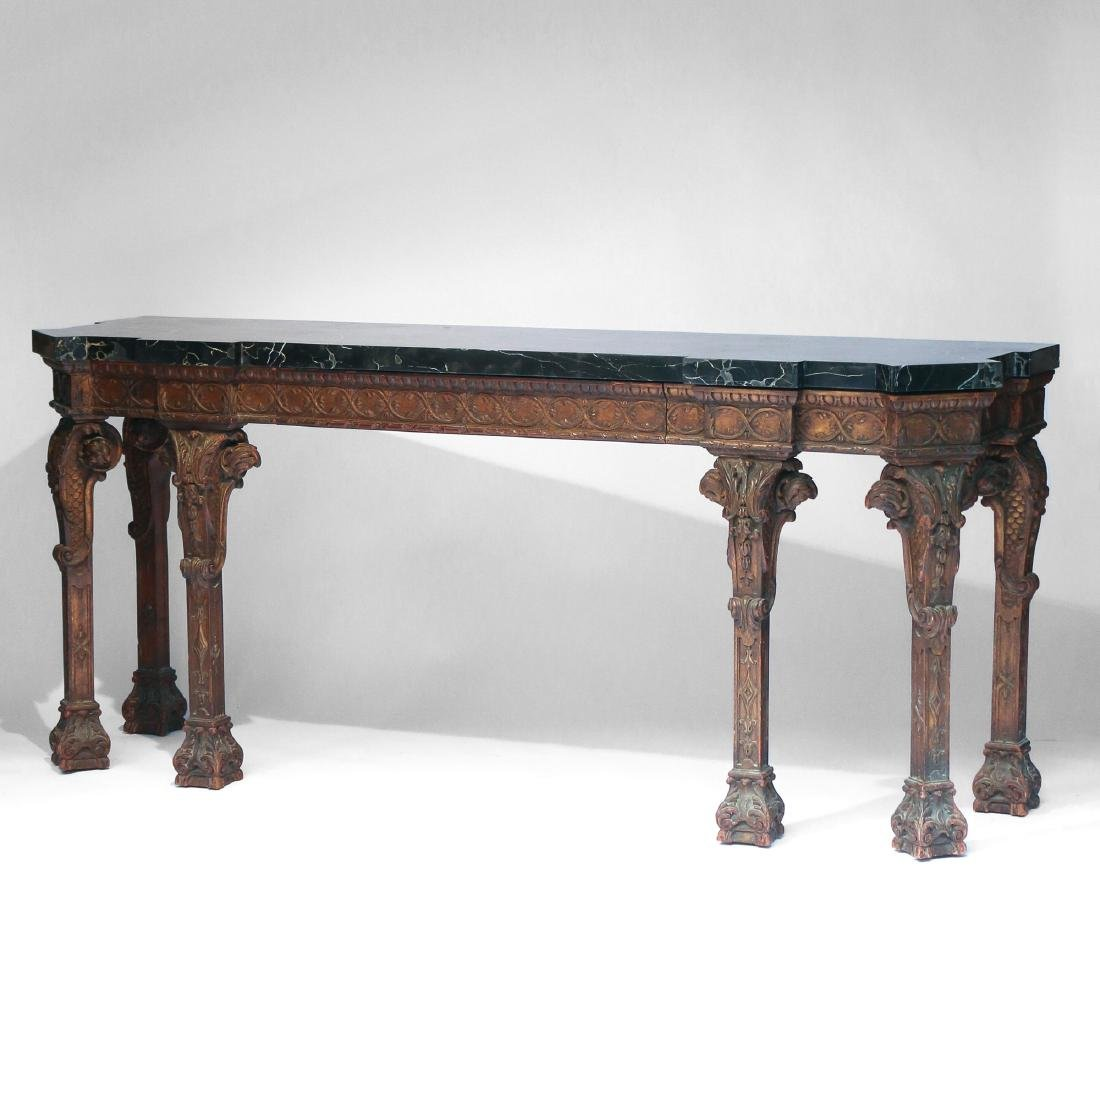 GEORGE II-STYLE GILT-CARVED MARBLE-TOP SIDE TABLE